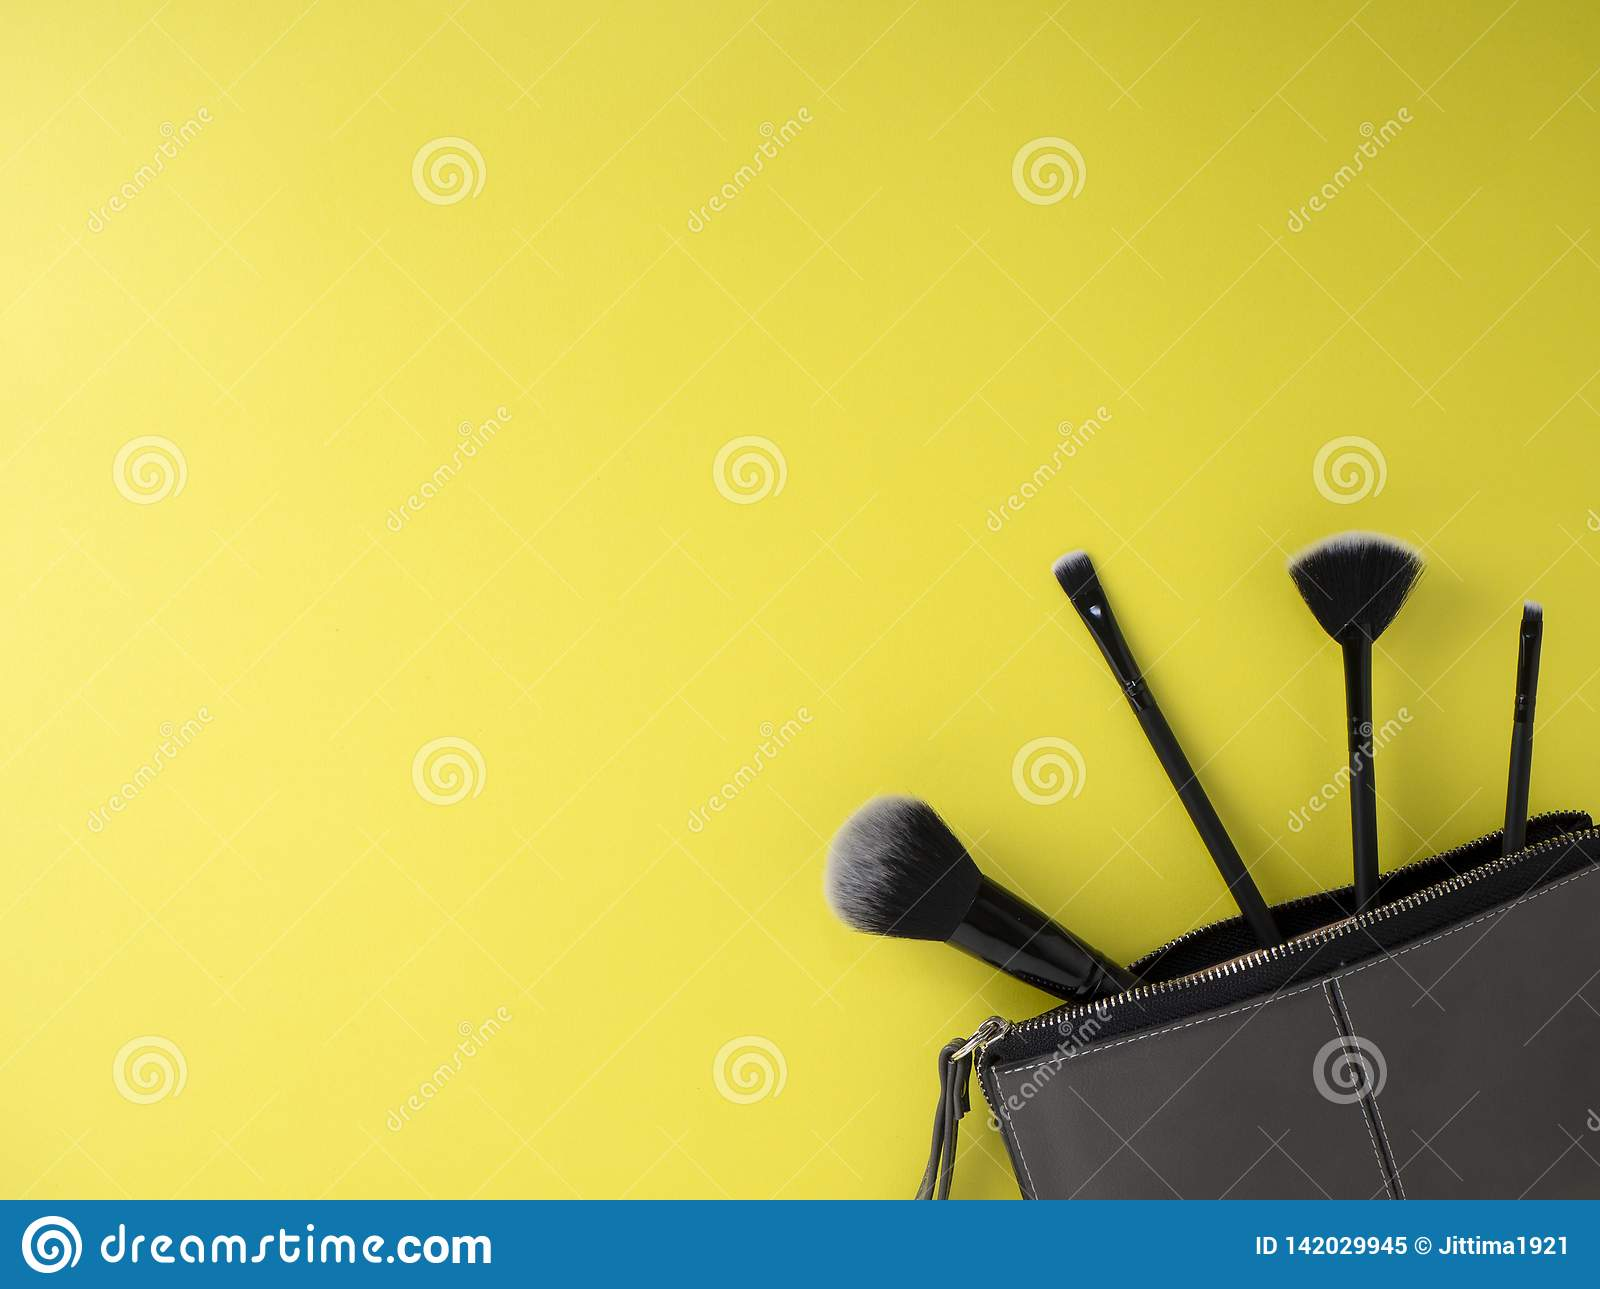 Bag with makeup brushes, cosmetics, yellow background